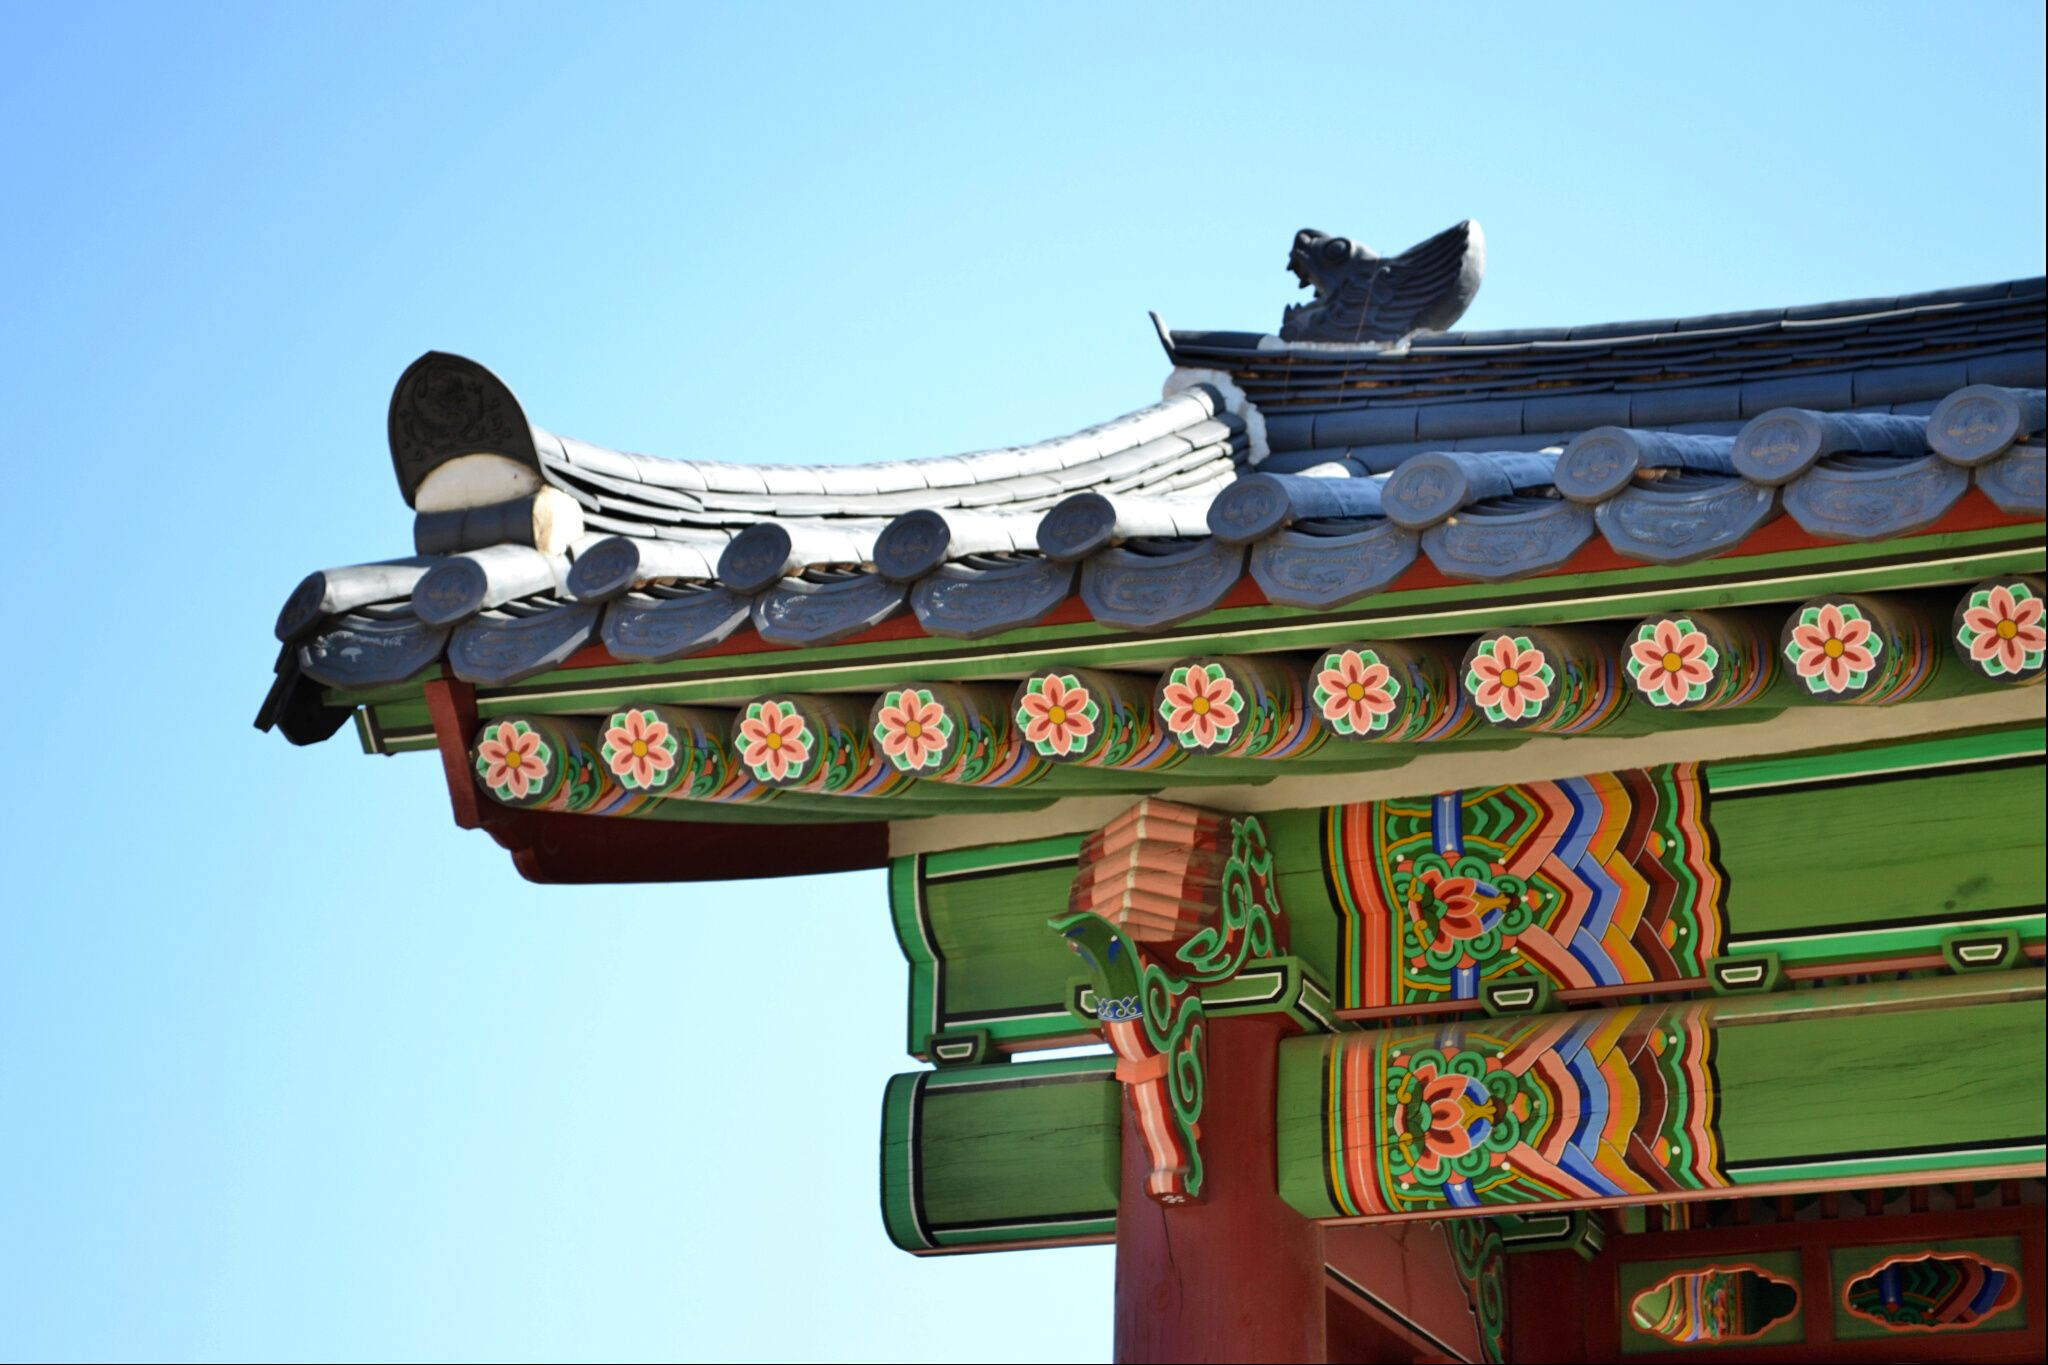 SOKOR '14: Colors and details. Gyeongbokgung Palace (Seoul, Korea)